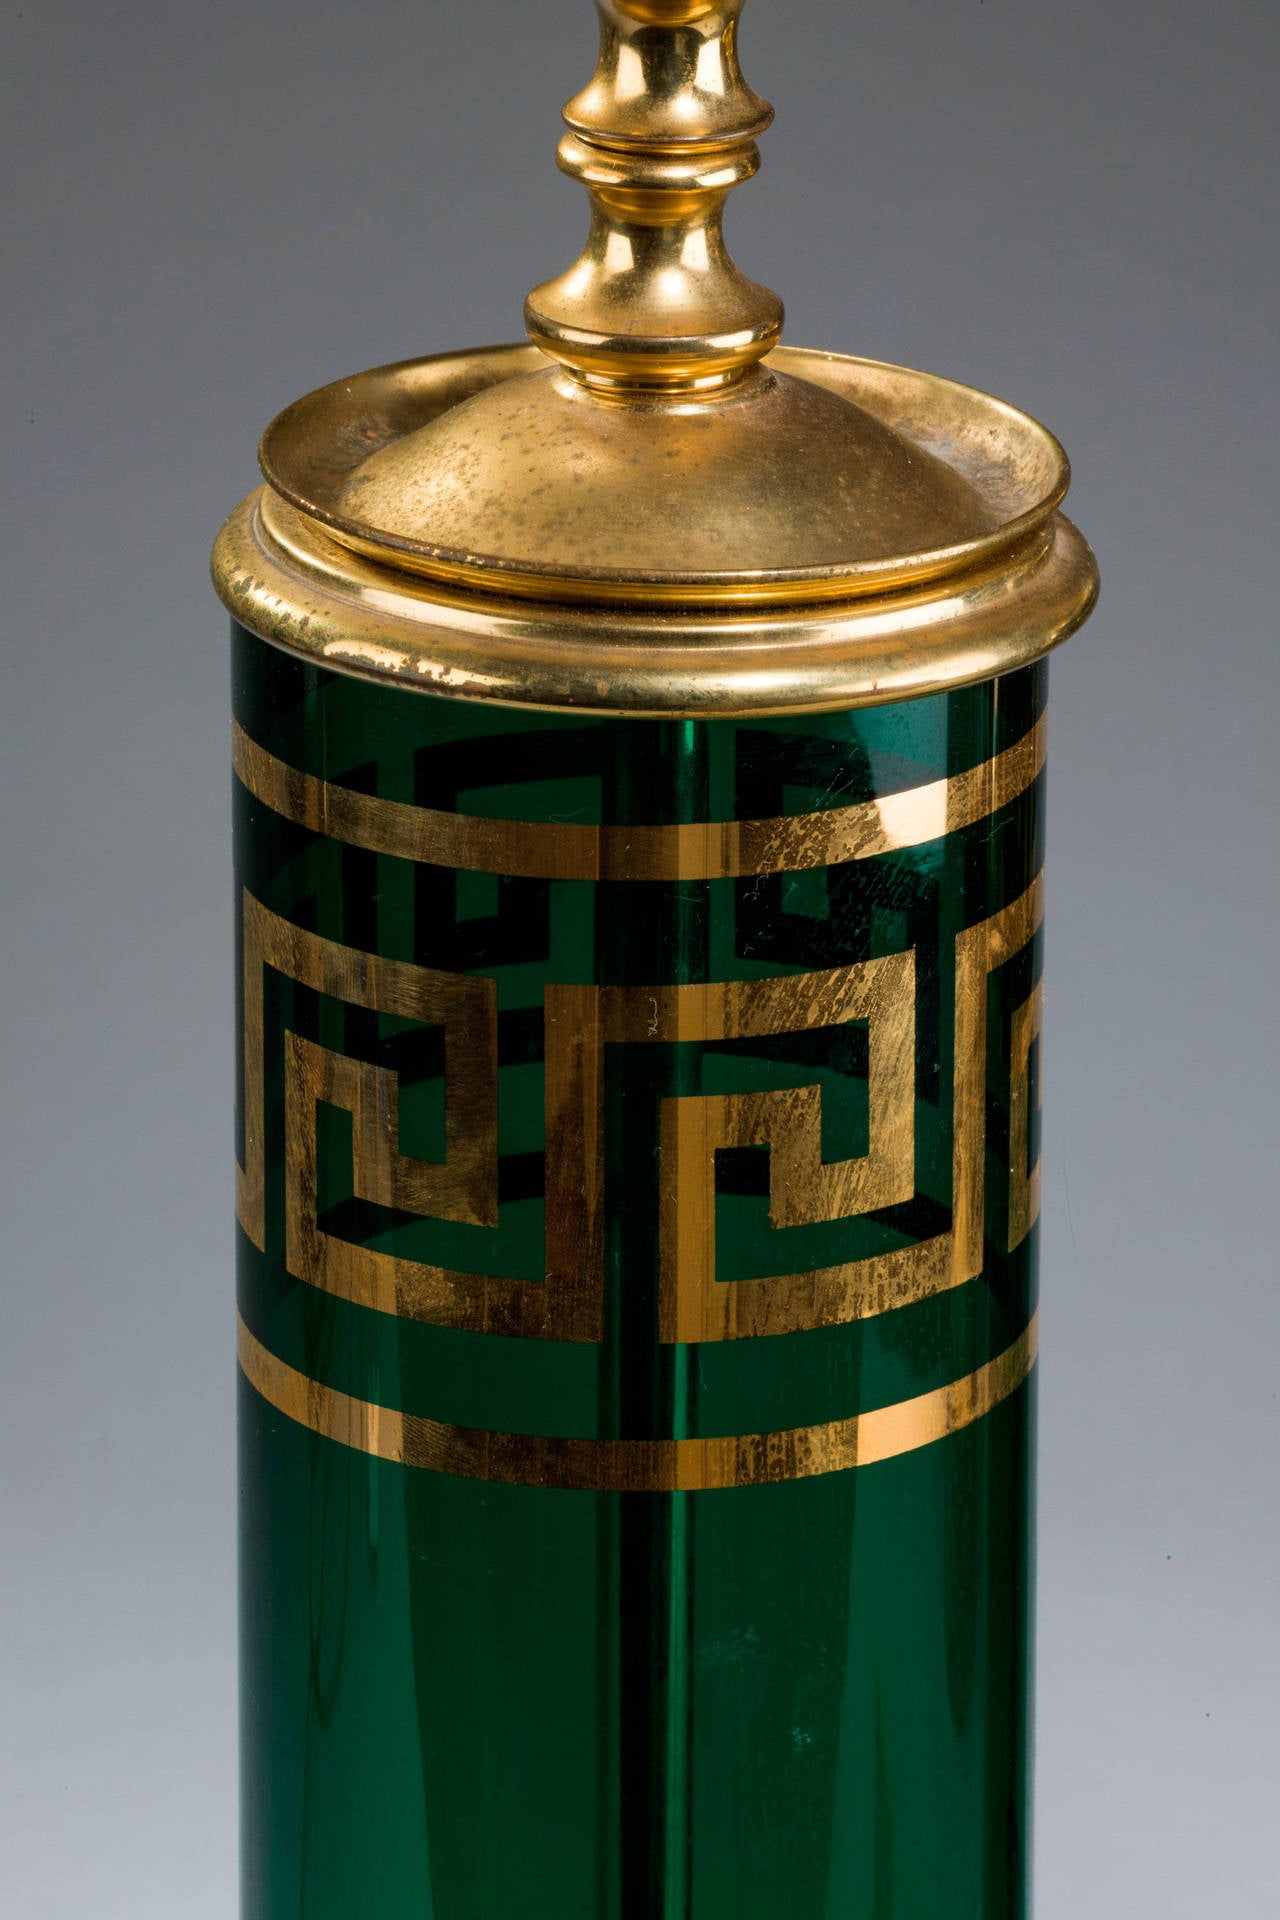 Pair of enamelled green glass lamps with Grecian key gilded decoration, original gilt metal mounts.  RR.